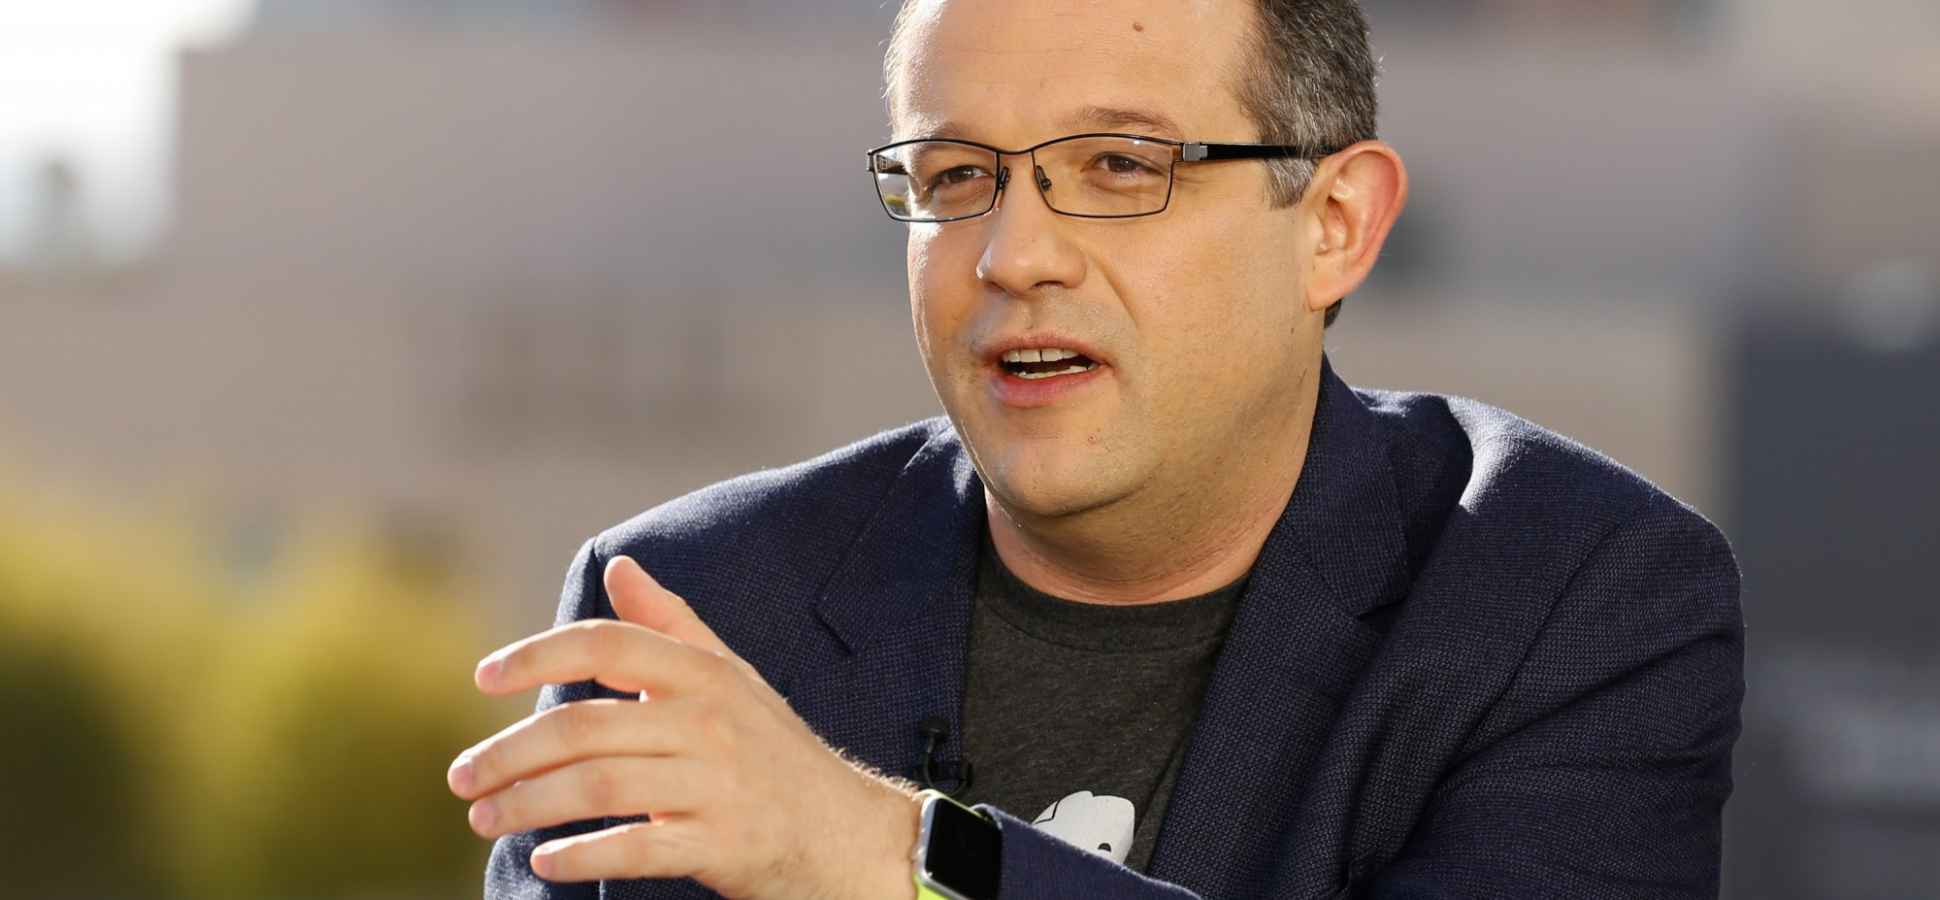 Why Evernote's Founder Doesn't Believe in Work-Life Balance